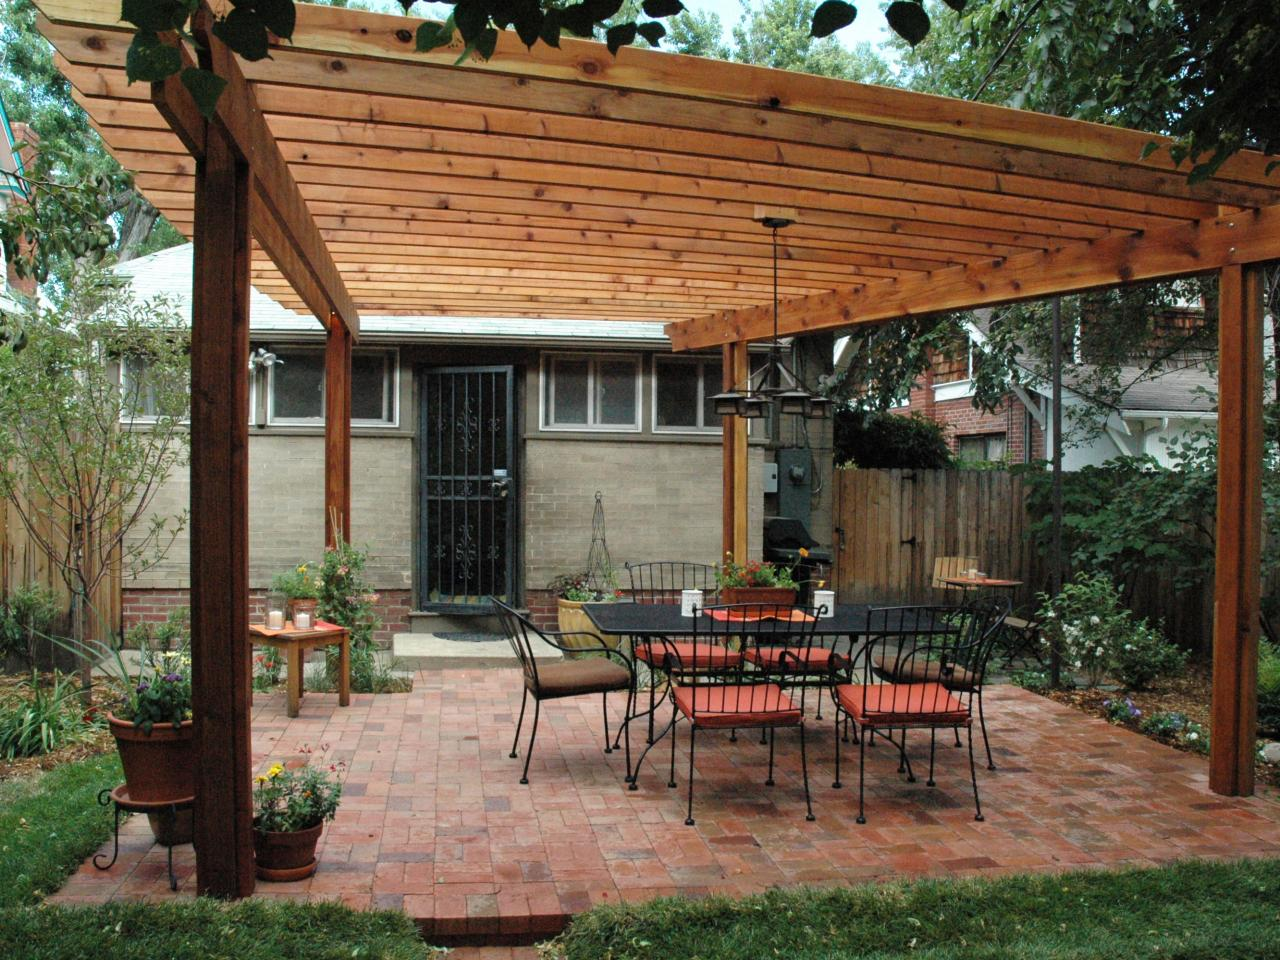 Arbor Installation-Denton TX Professional Landscapers & Outdoor Living Designs-We offer Landscape Design, Outdoor Patios & Pergolas, Outdoor Living Spaces, Stonescapes, Residential & Commercial Landscaping, Irrigation Installation & Repairs, Drainage Systems, Landscape Lighting, Outdoor Living Spaces, Tree Service, Lawn Service, and more.